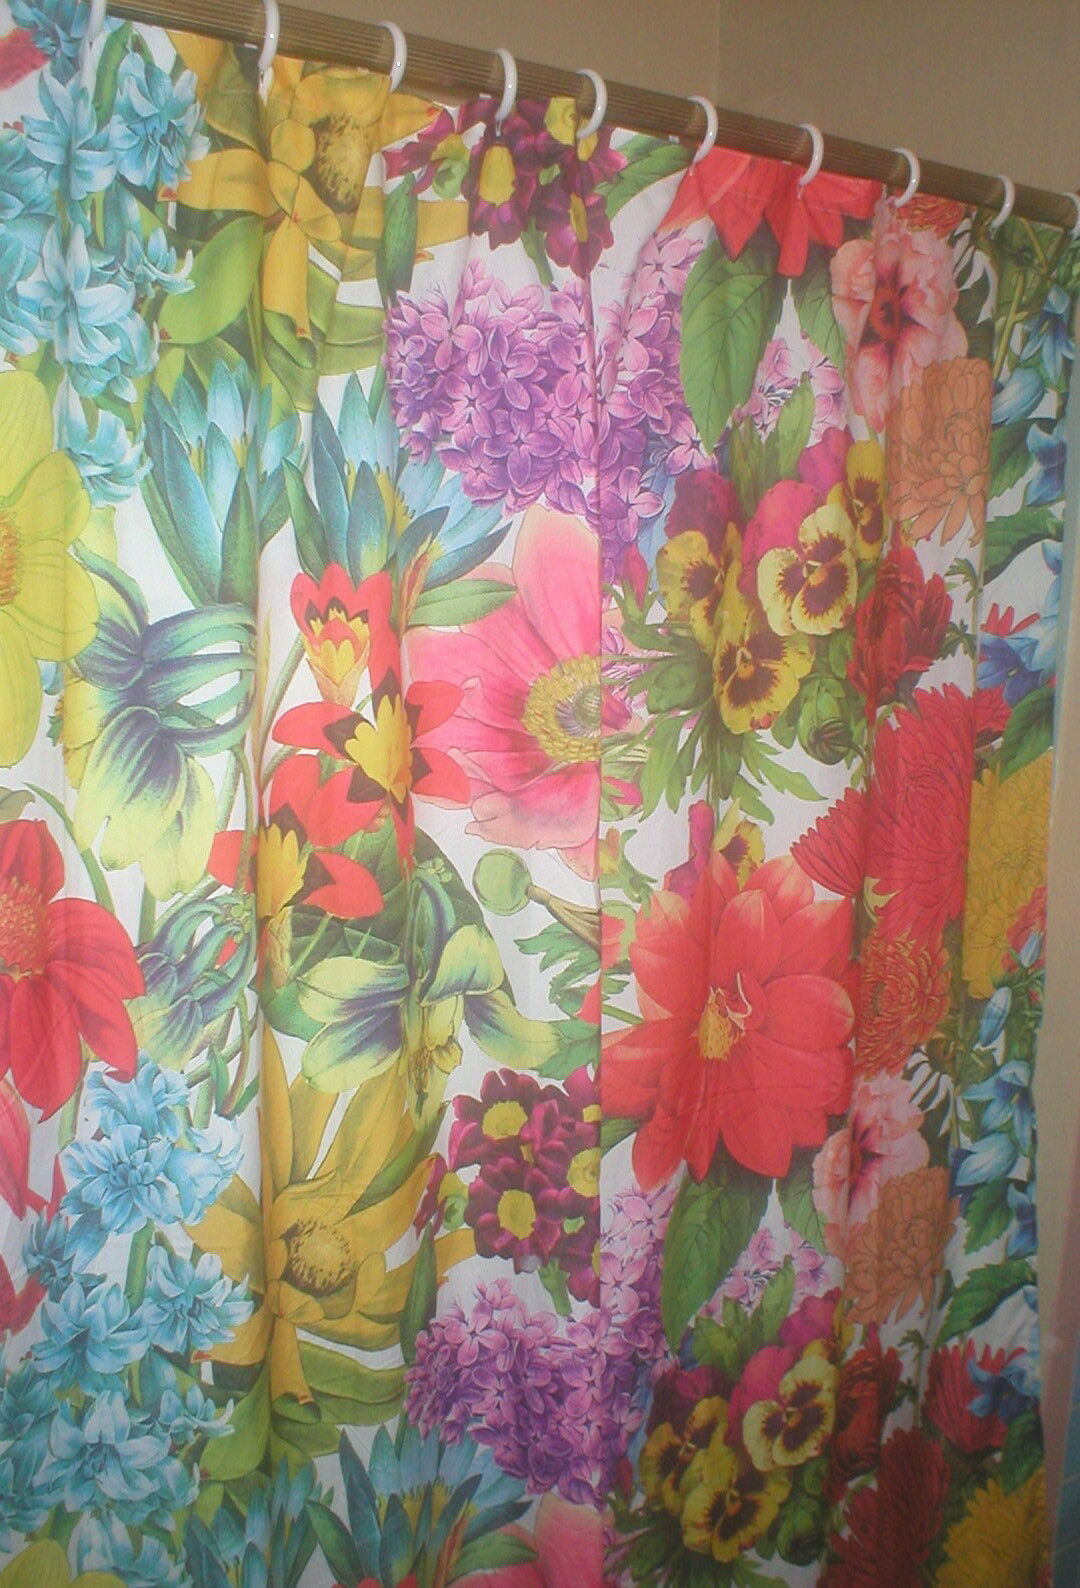 SET OF 2 JUMBO FLORAL SHOWER CURTAINS LILAC PANSY SUNFLOWER 70 X 72